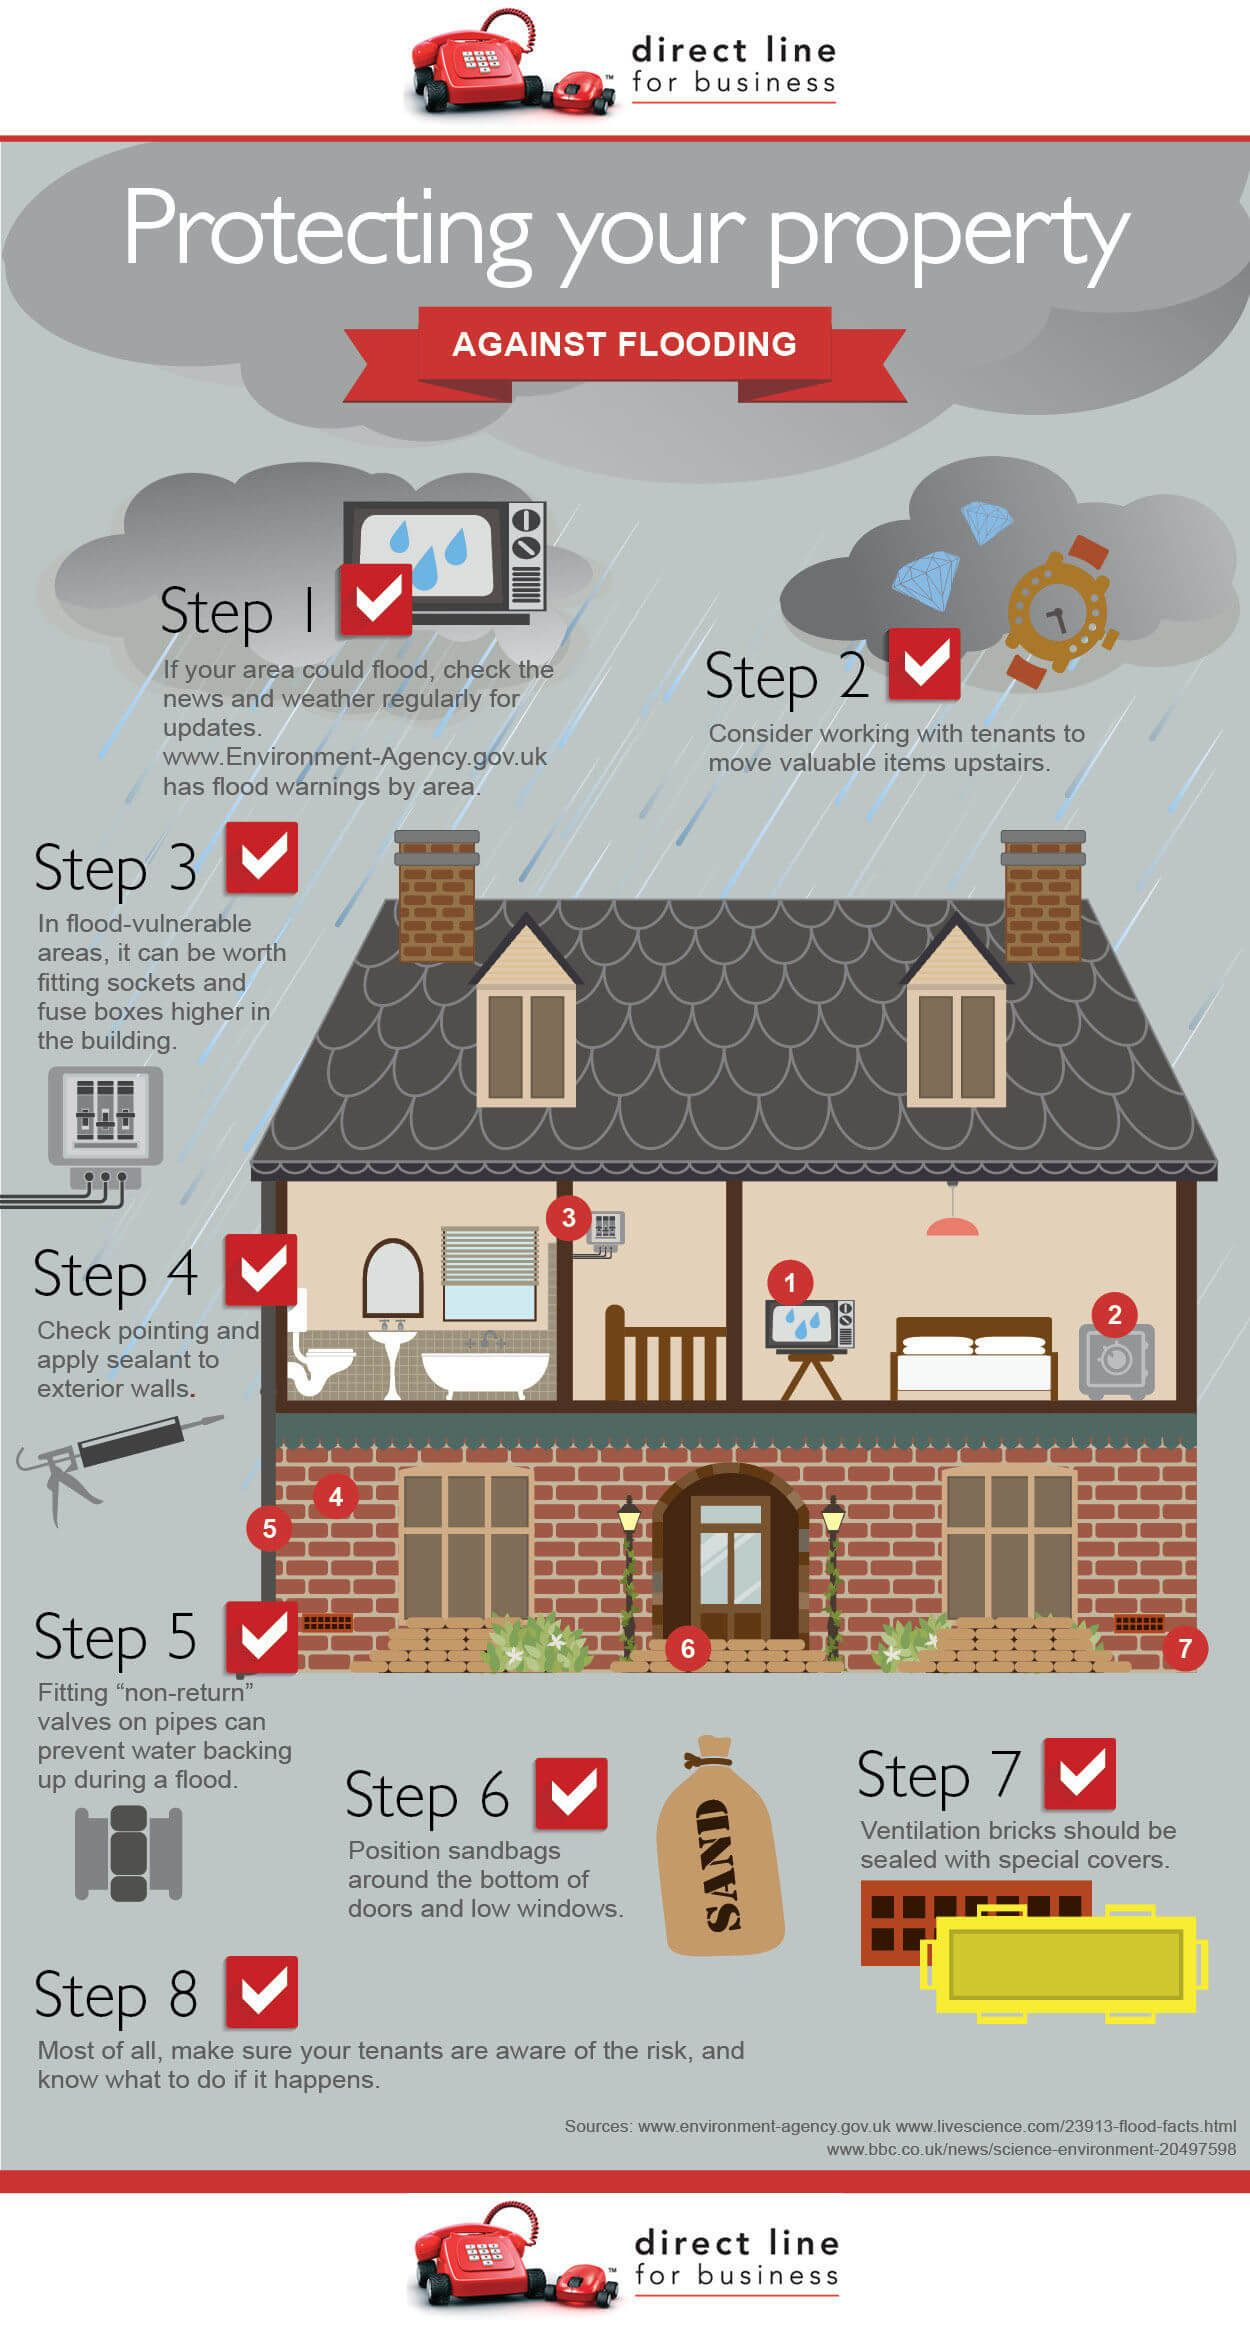 Pin On Home Outdoors Safety